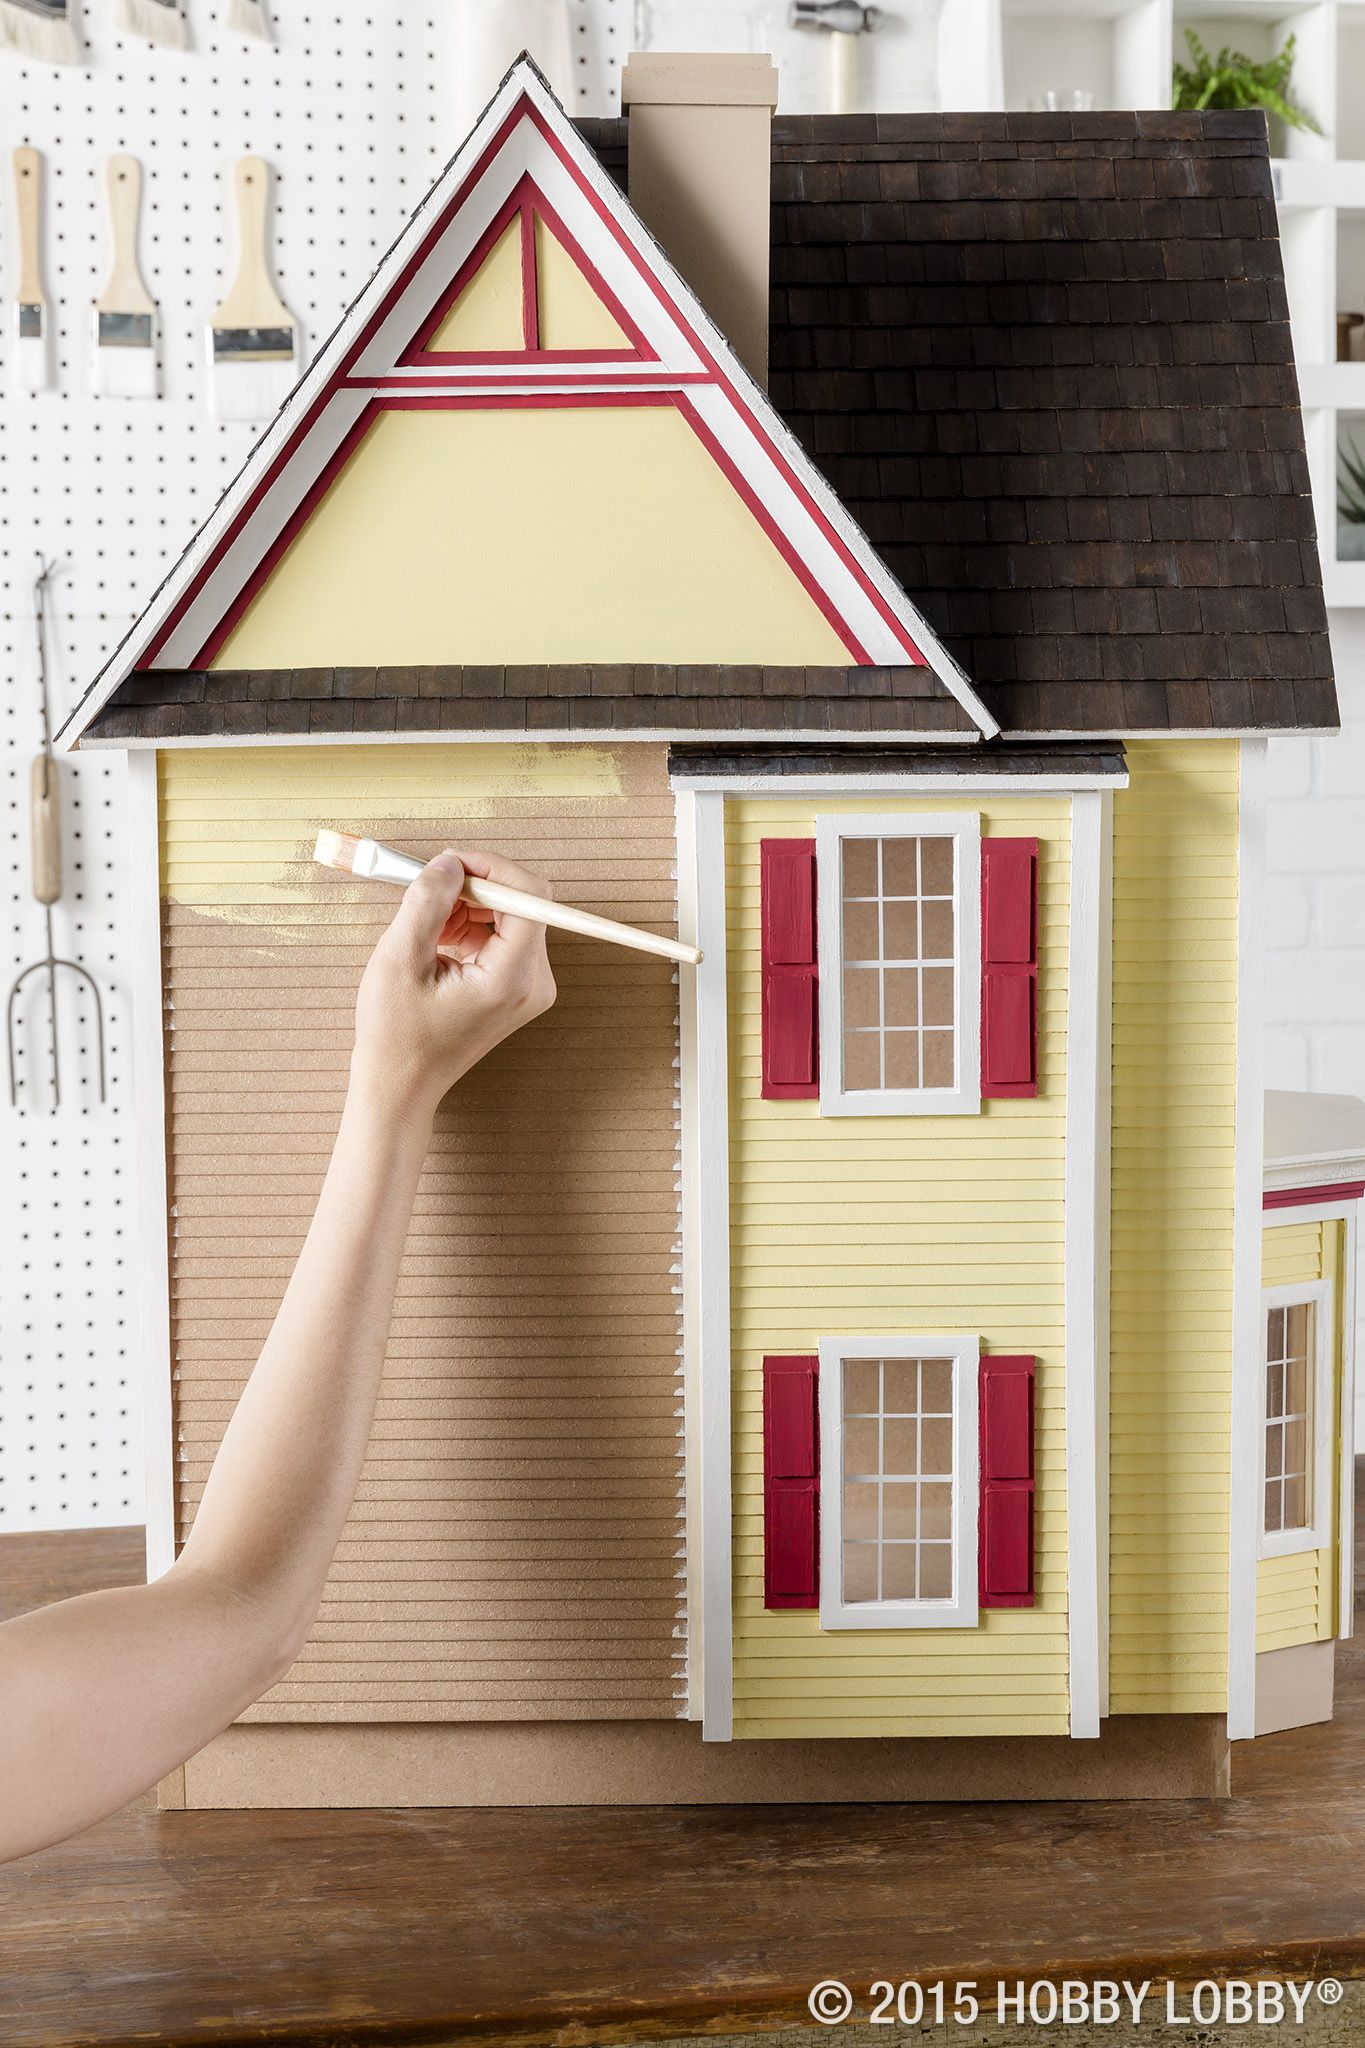 Tips For Painting A Dollhouse 1 Start Painting At The Top And Work Your Way Down 2 Tape Off